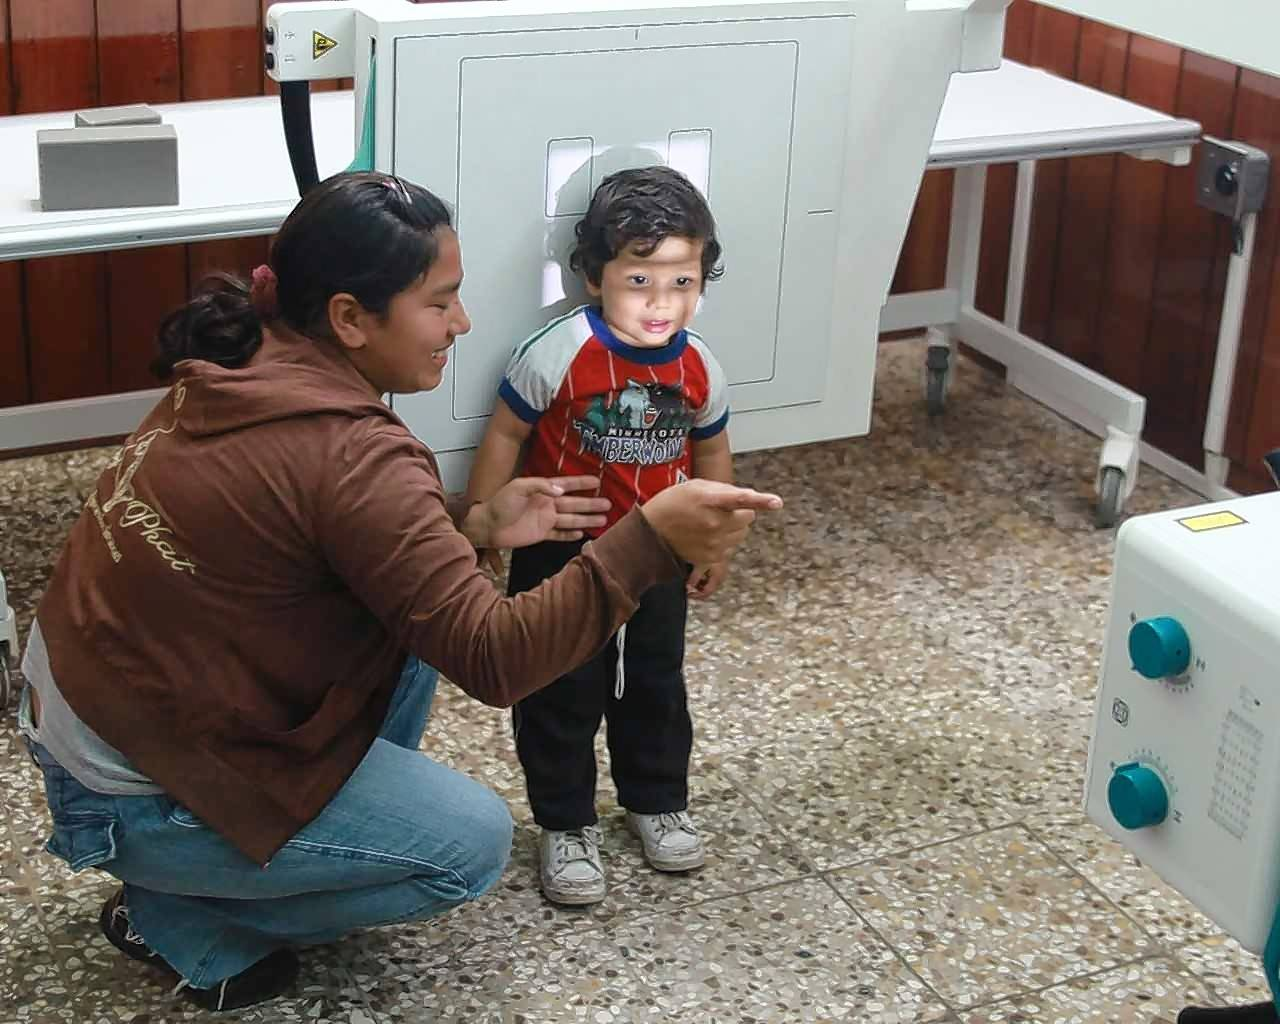 Local residents learned about HealthRays X-ray services during a recent open house at one of the clinics that is now up and running in Guatemala.